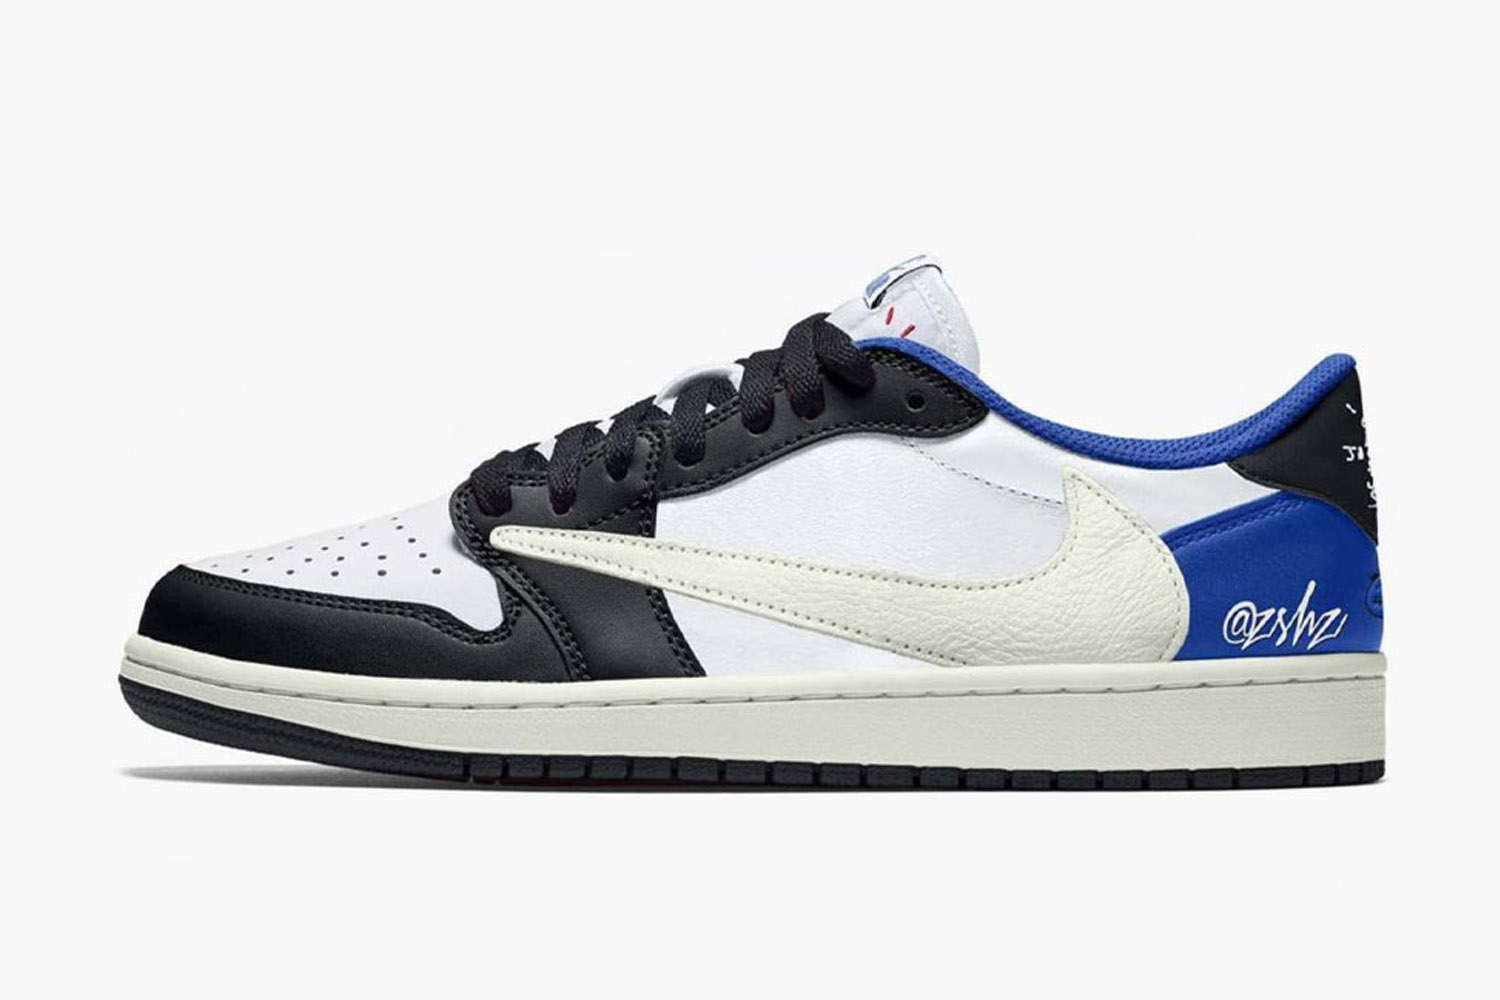 fragment design x Travis Scott x Air Jordan 1 Low 三方联名鞋款发售情报曝光